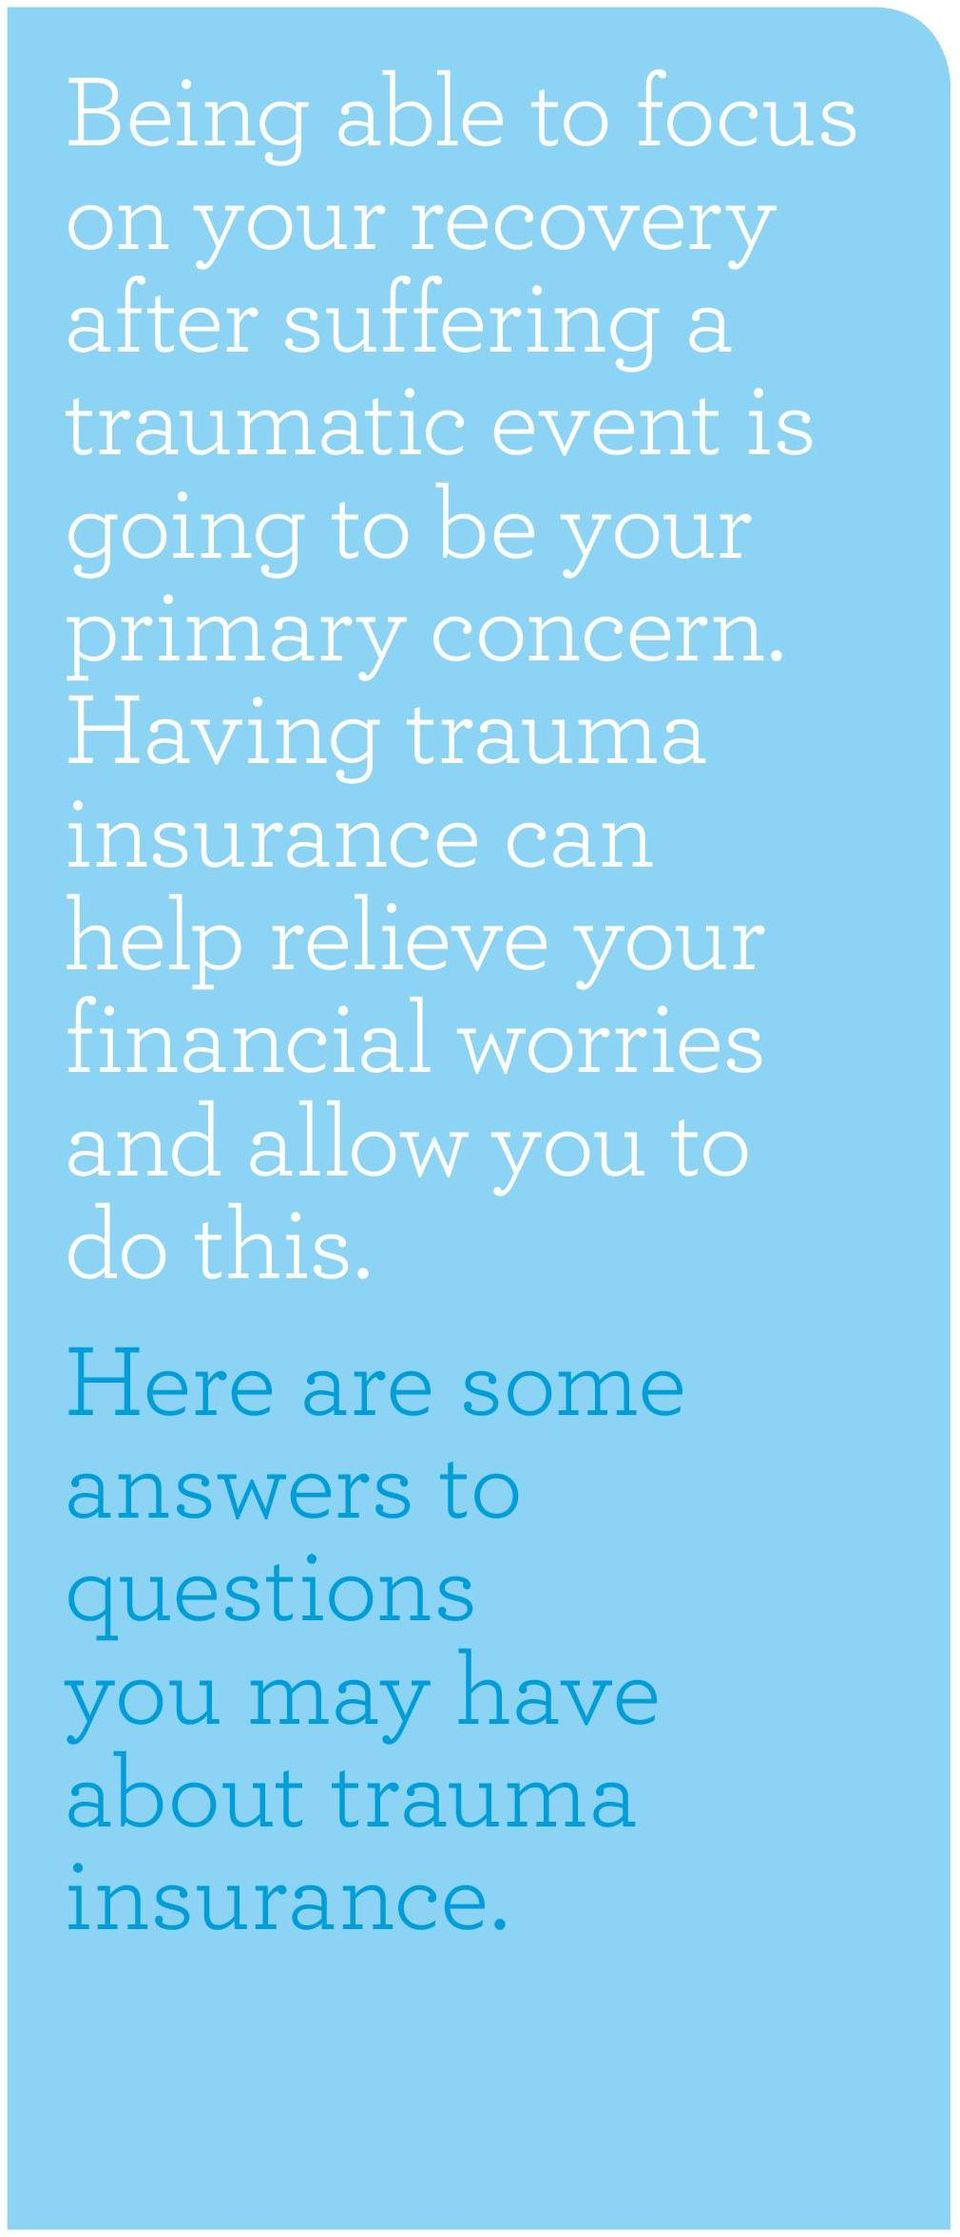 Having trauma insurance can help relieve your financial worries and